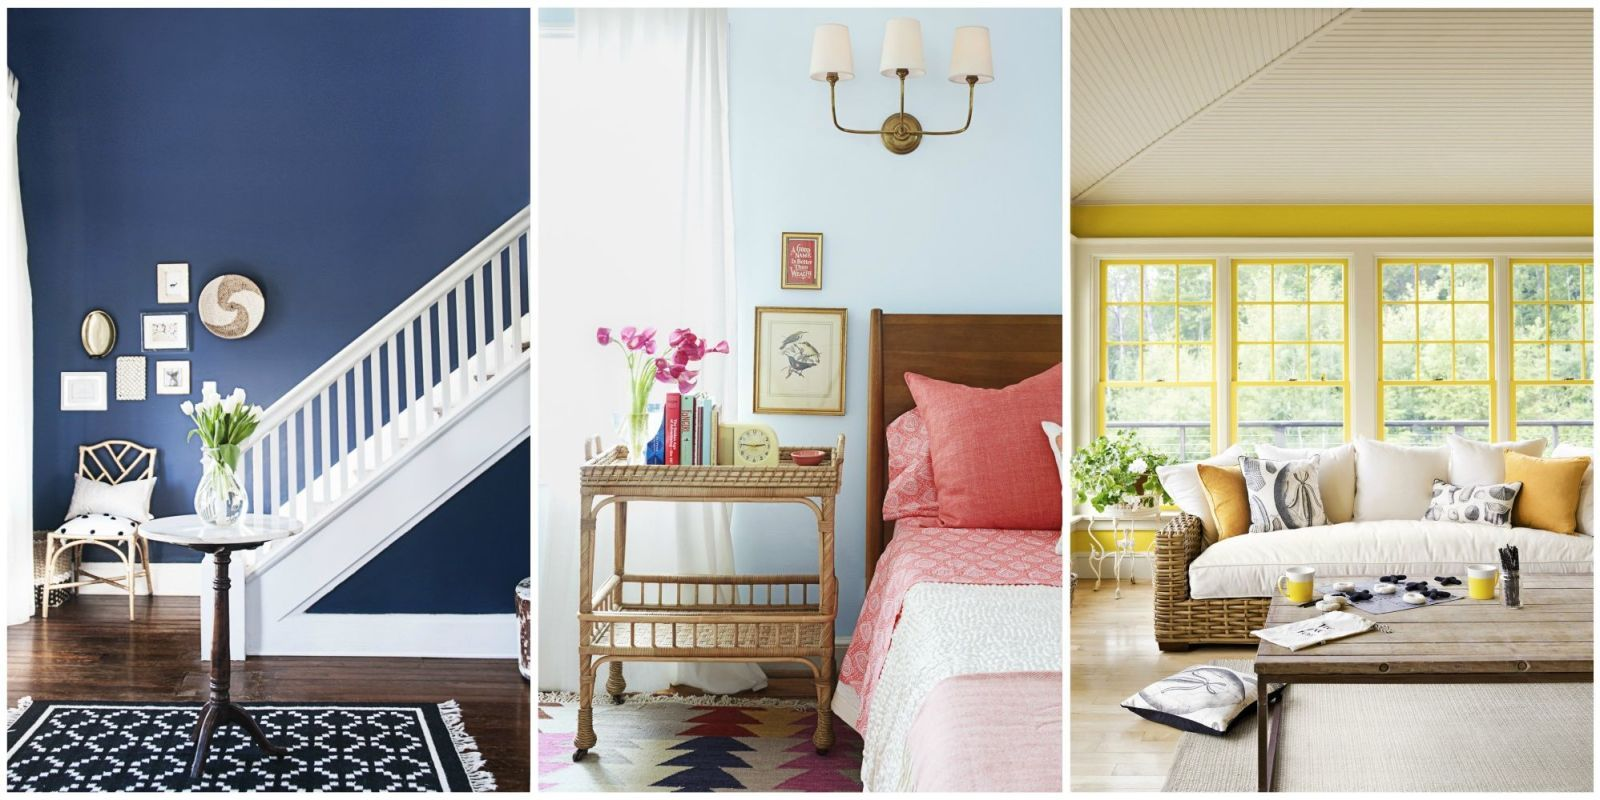 Attractive Finding The Right Paint Color Among Thousands Is No Simple Feat! To Make It  Easier, Pull From Things You Already Love: Take A Photo Of A Favorite Rug  Or ...